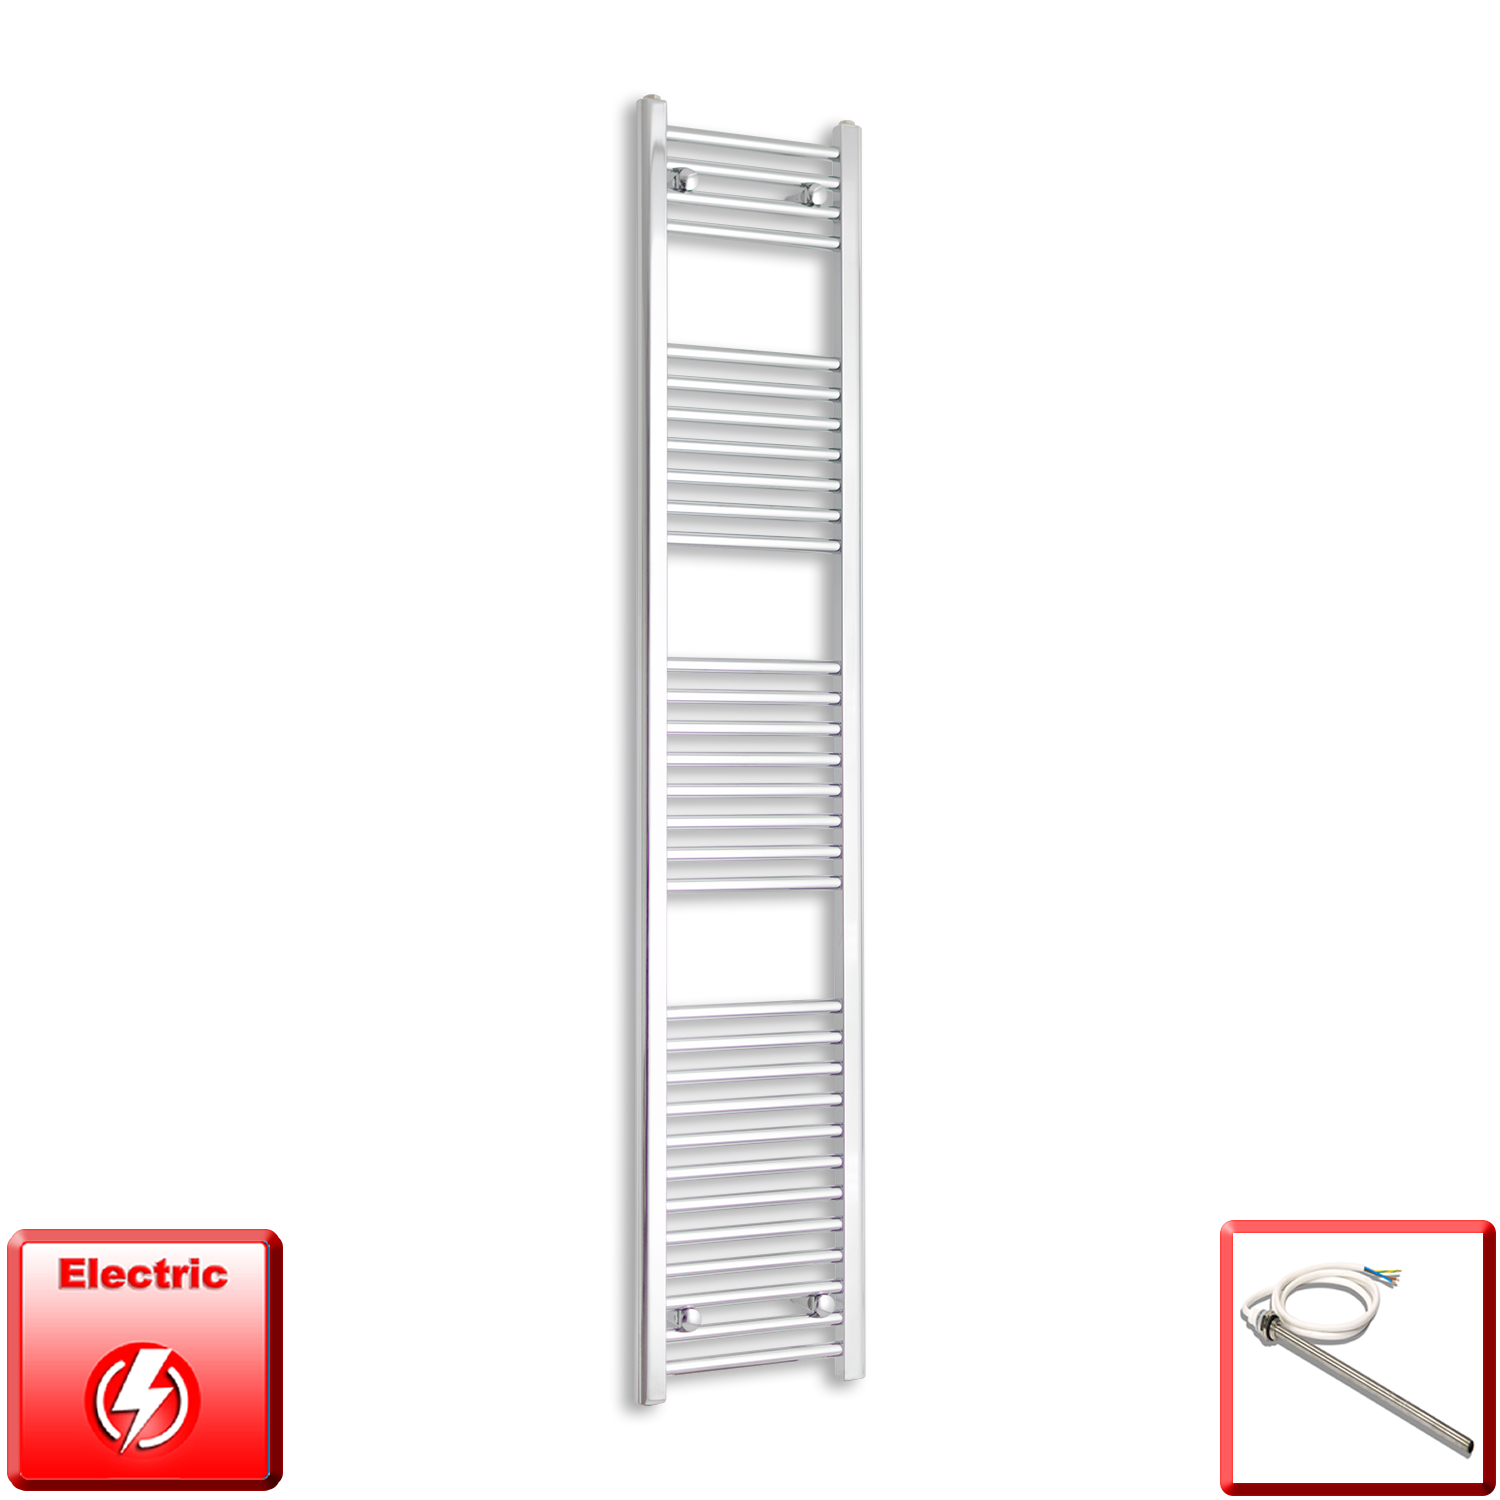 350mm Wide 1800mm High Pre-Filled Chrome Electric Towel Rail Radiator With Single Heat Element